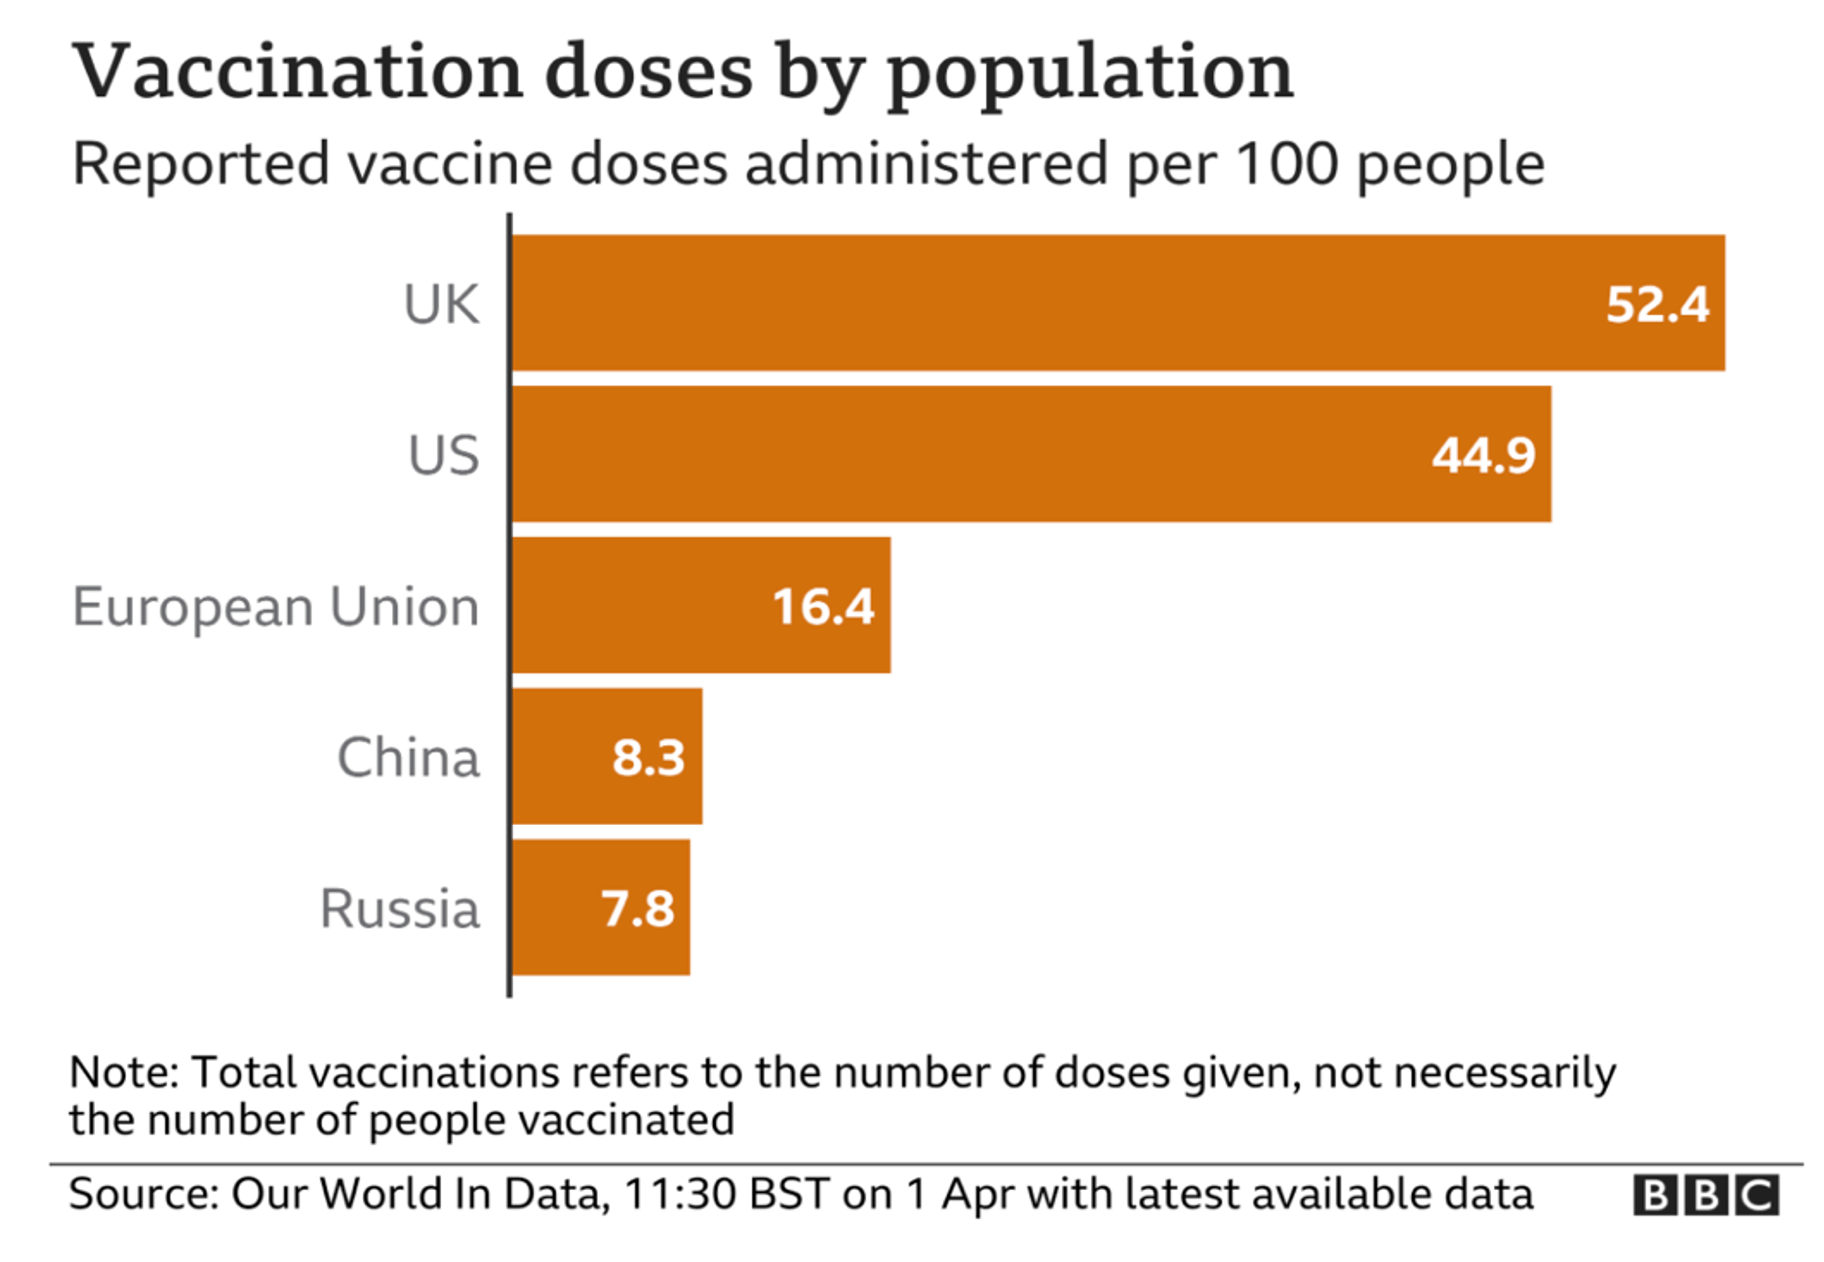 Vaccinations doses by population